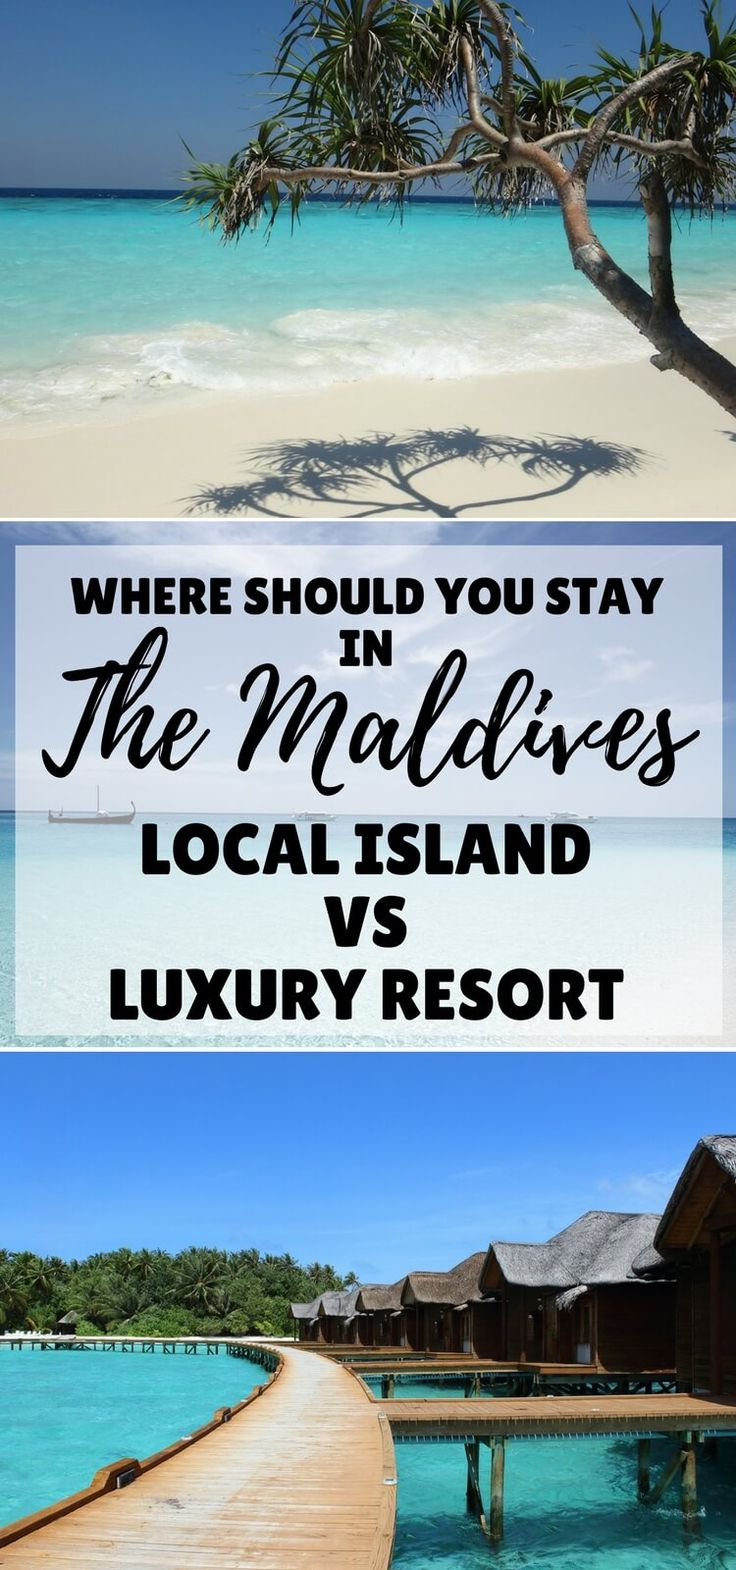 Plan The Perfect Maldives Vacation with Options For Every Budget!